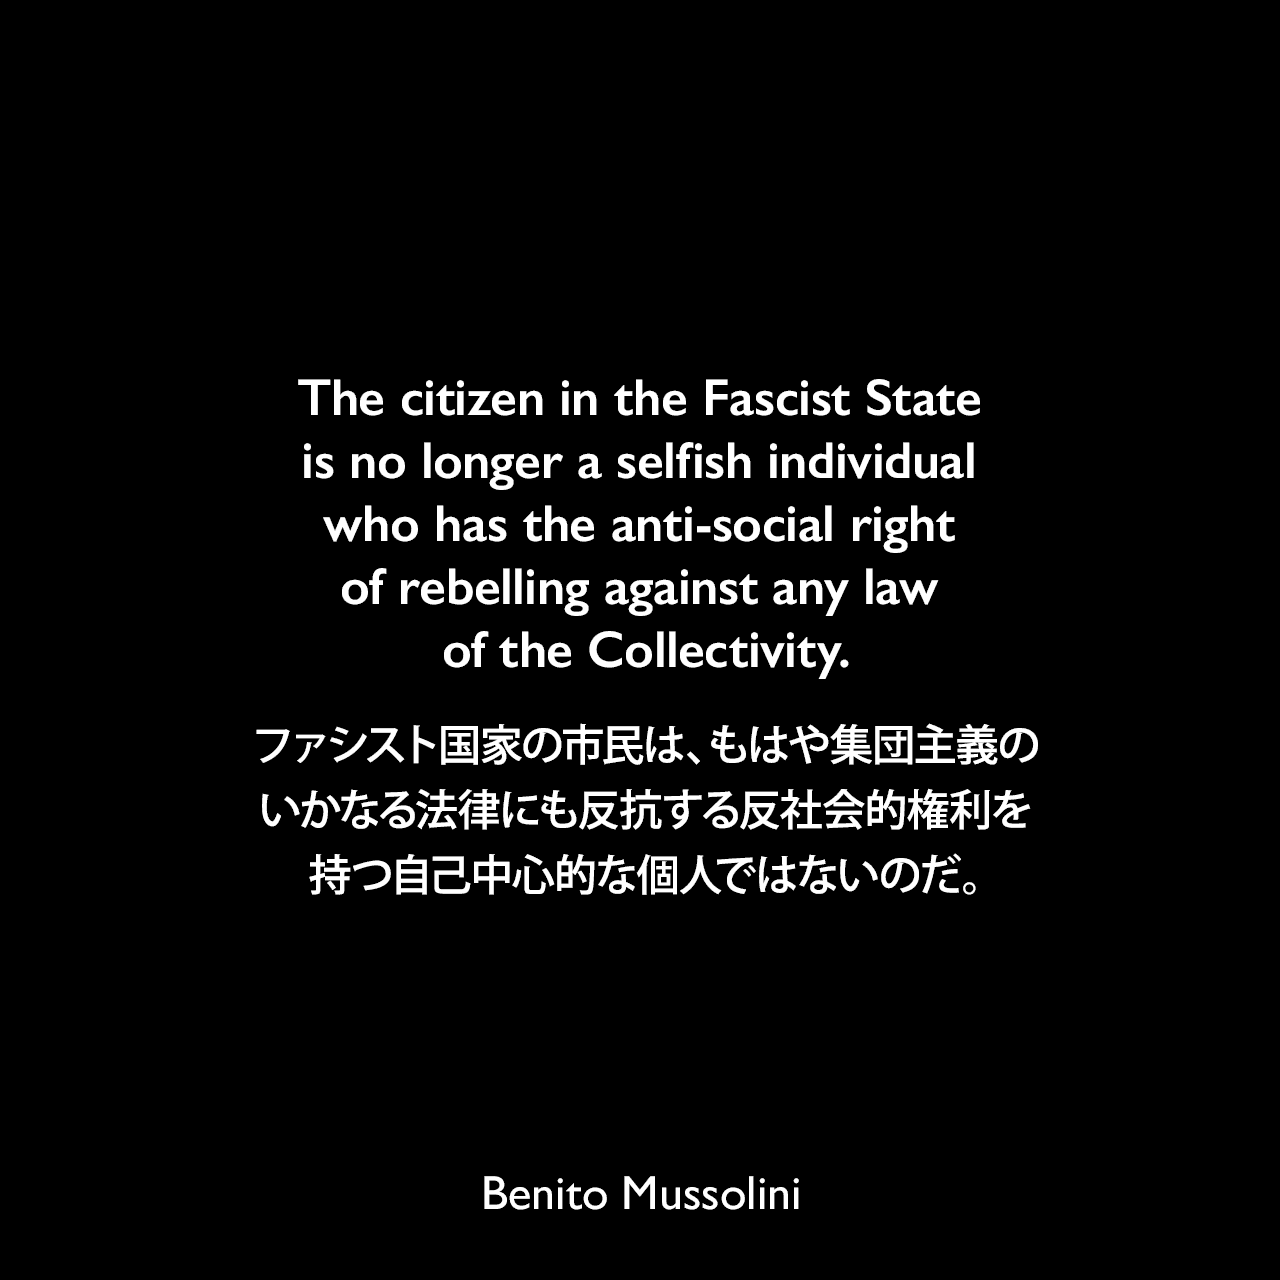 The citizen in the Fascist State is no longer a selfish individual who has the anti-social right of rebelling against any law of the Collectivity.ファシスト国家の市民は、もはや集団主義のいかなる法律にも反抗する反社会的権利を持つ自己中心的な個人ではないのだ。- 1928年 ムッソリーニ自伝よりBenito Mussolini